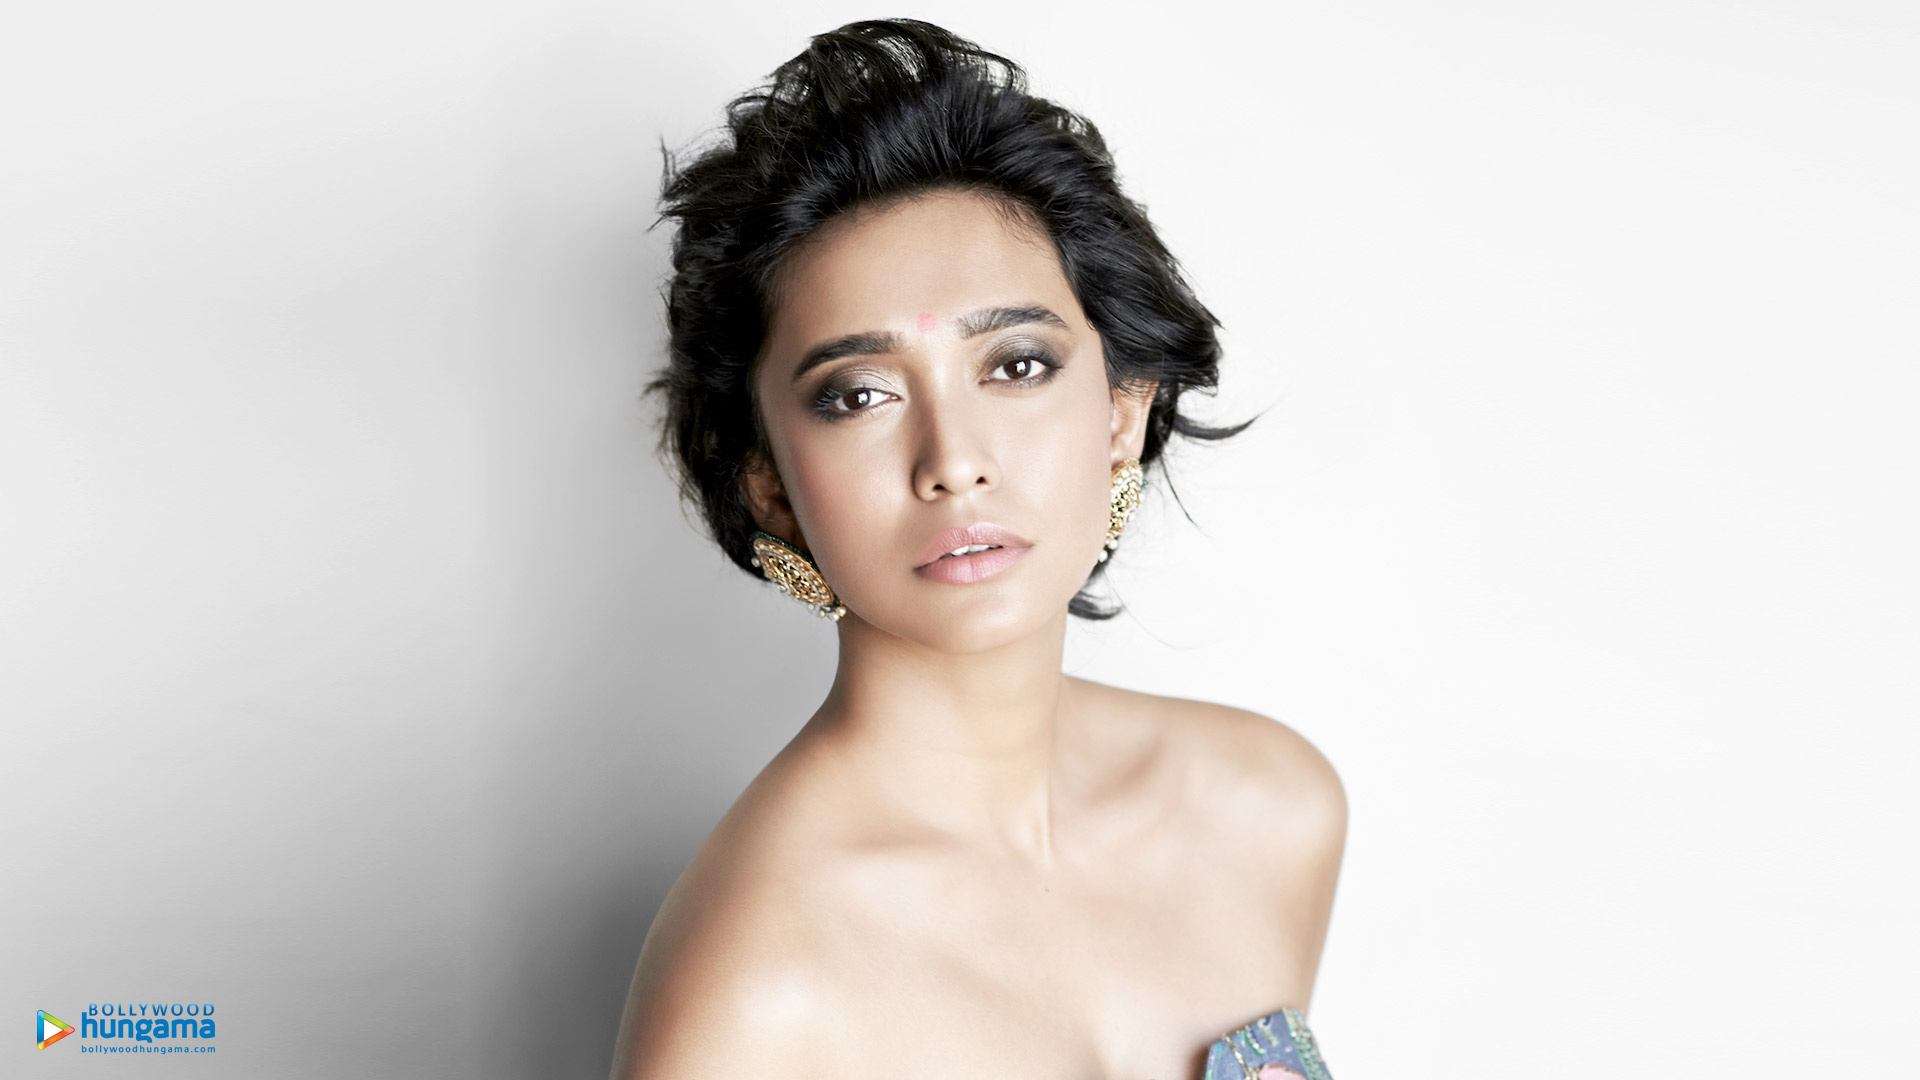 Discussion on this topic: Randee Heller, sayani-gupta/